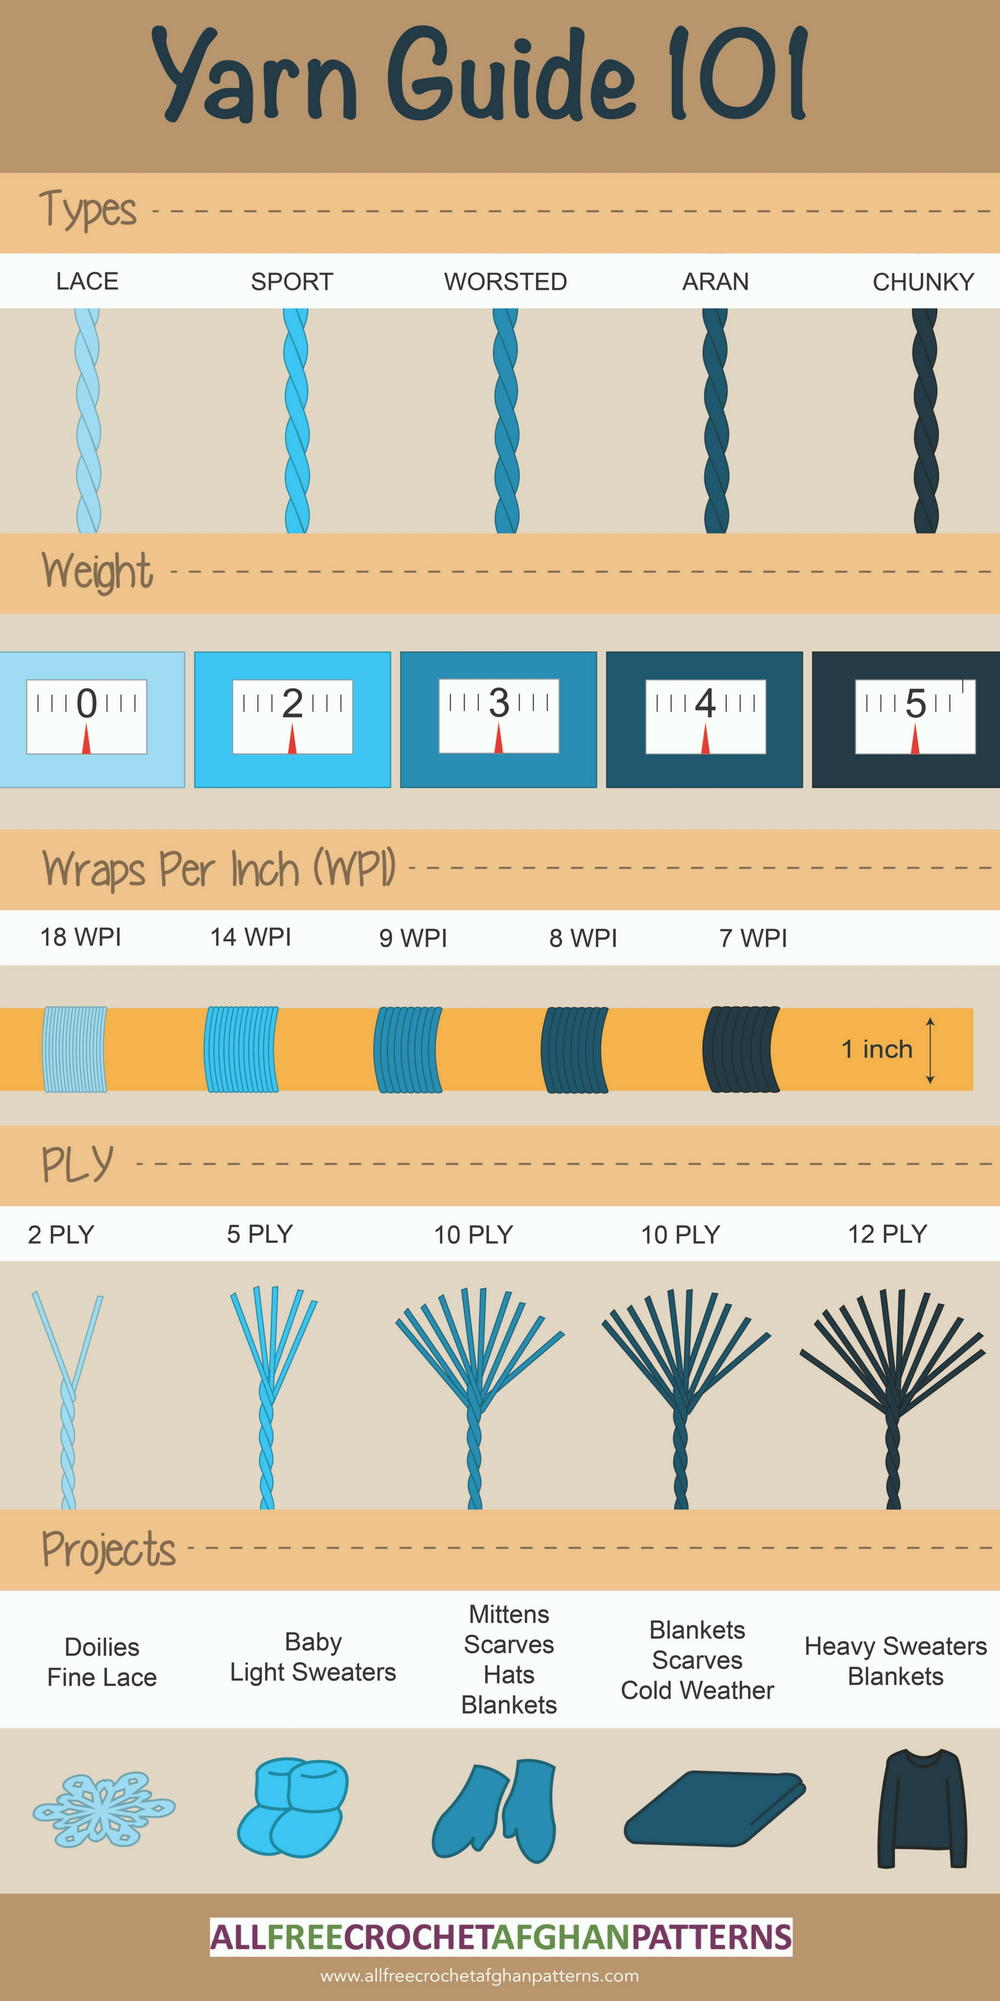 Yarn Weight 101 Infographic Allfreecrochetafghanpatterns Com